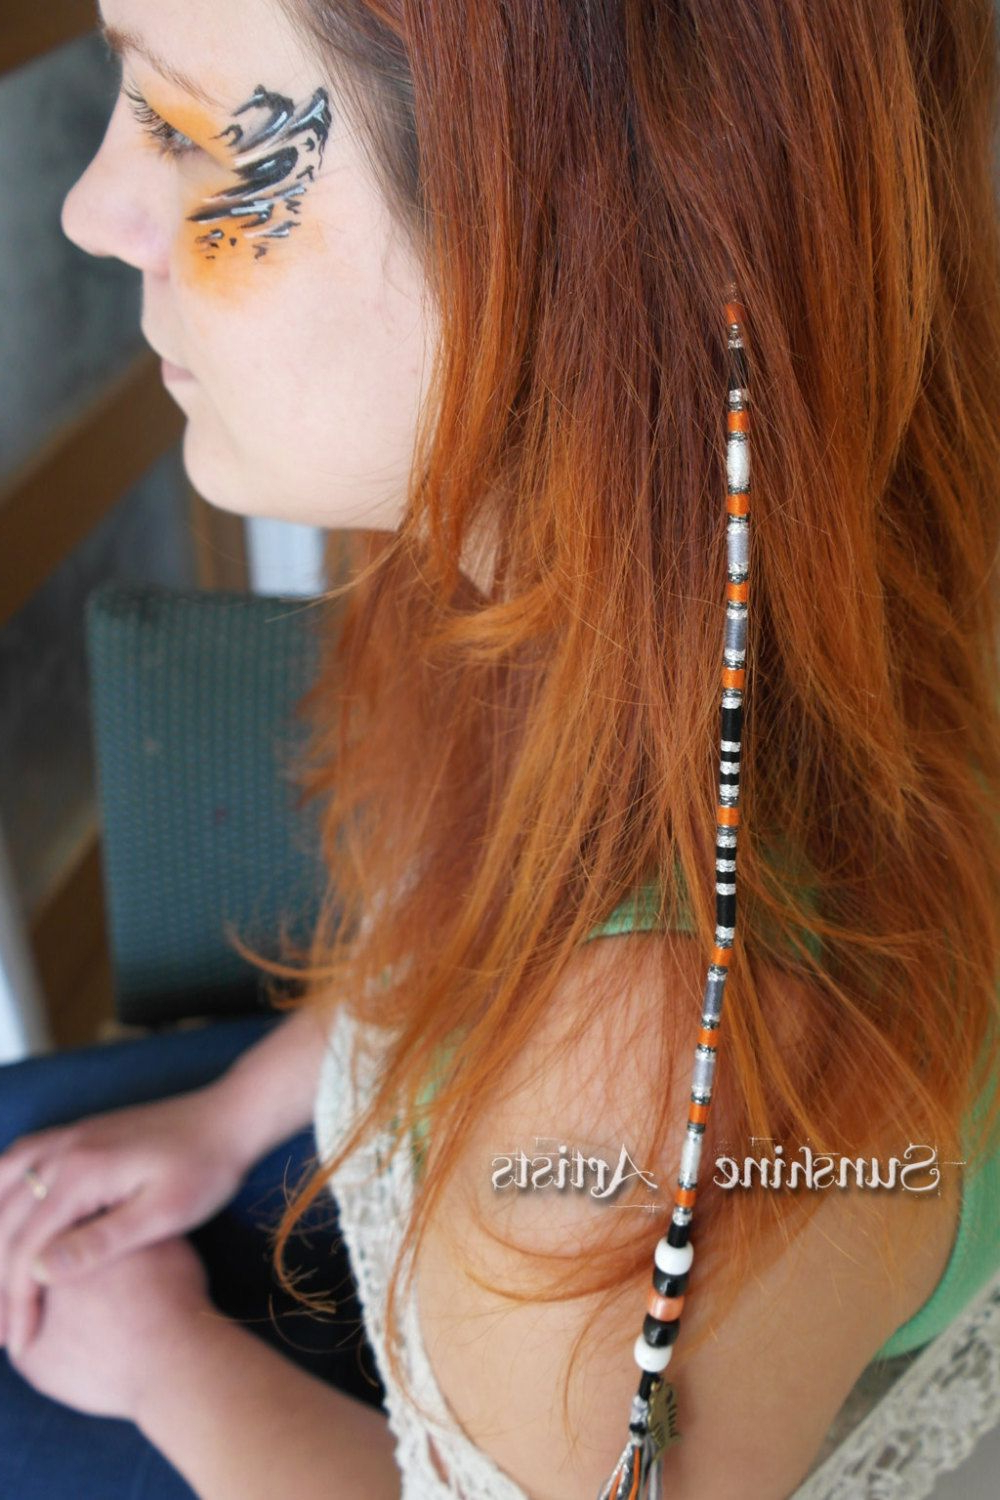 Fish Charm Hair Wrap, Clip In Hair Braid In Dark Orange In Current Braided Hairstyles With Beads And Wraps (View 18 of 20)